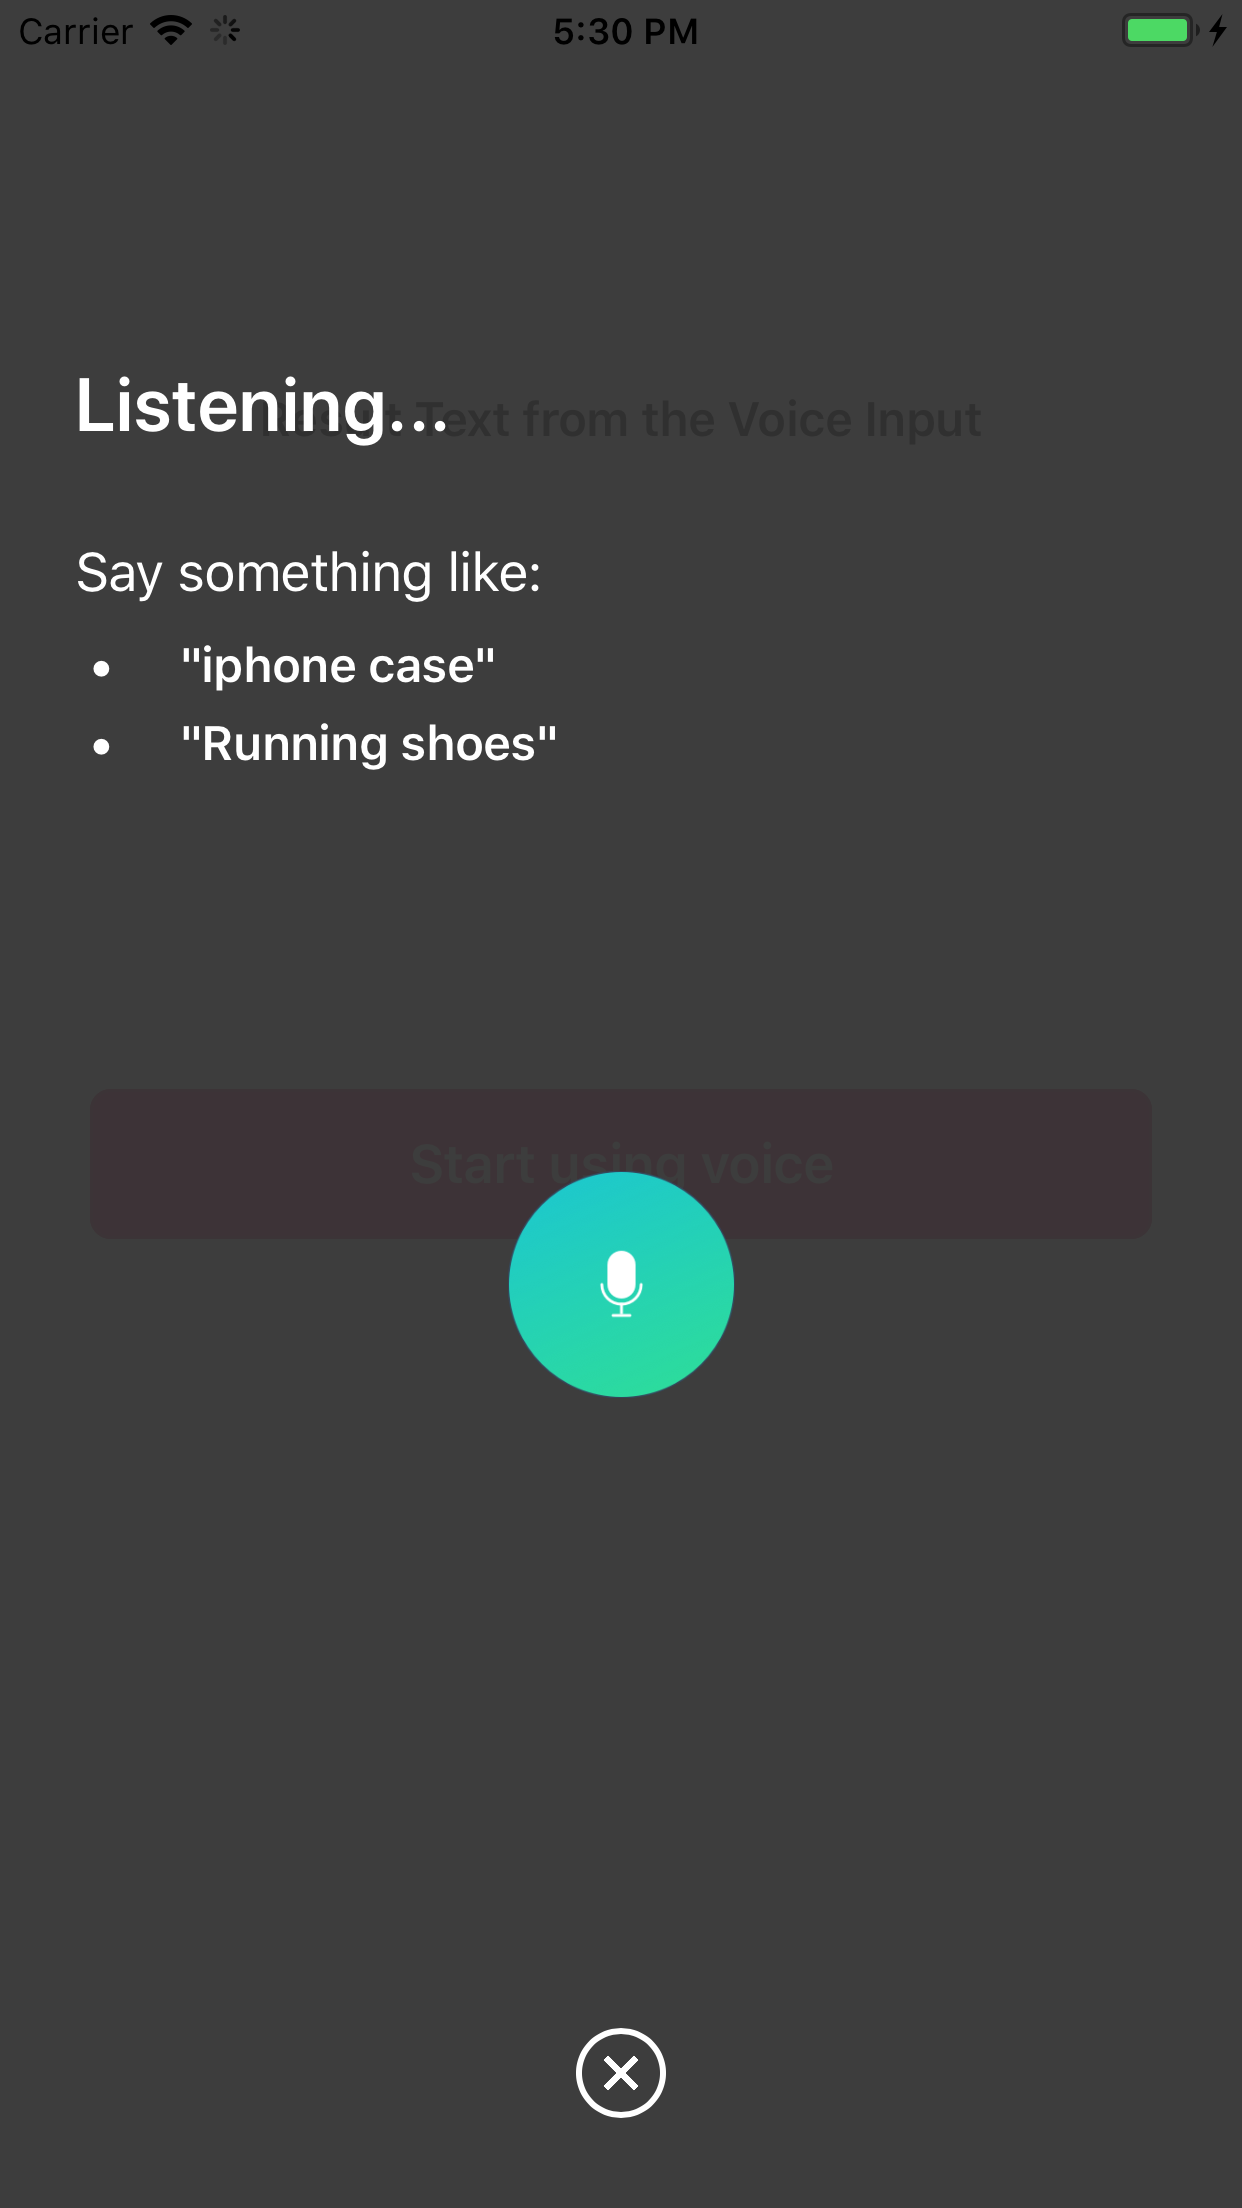 An overlay that gets your user's voice permission and input